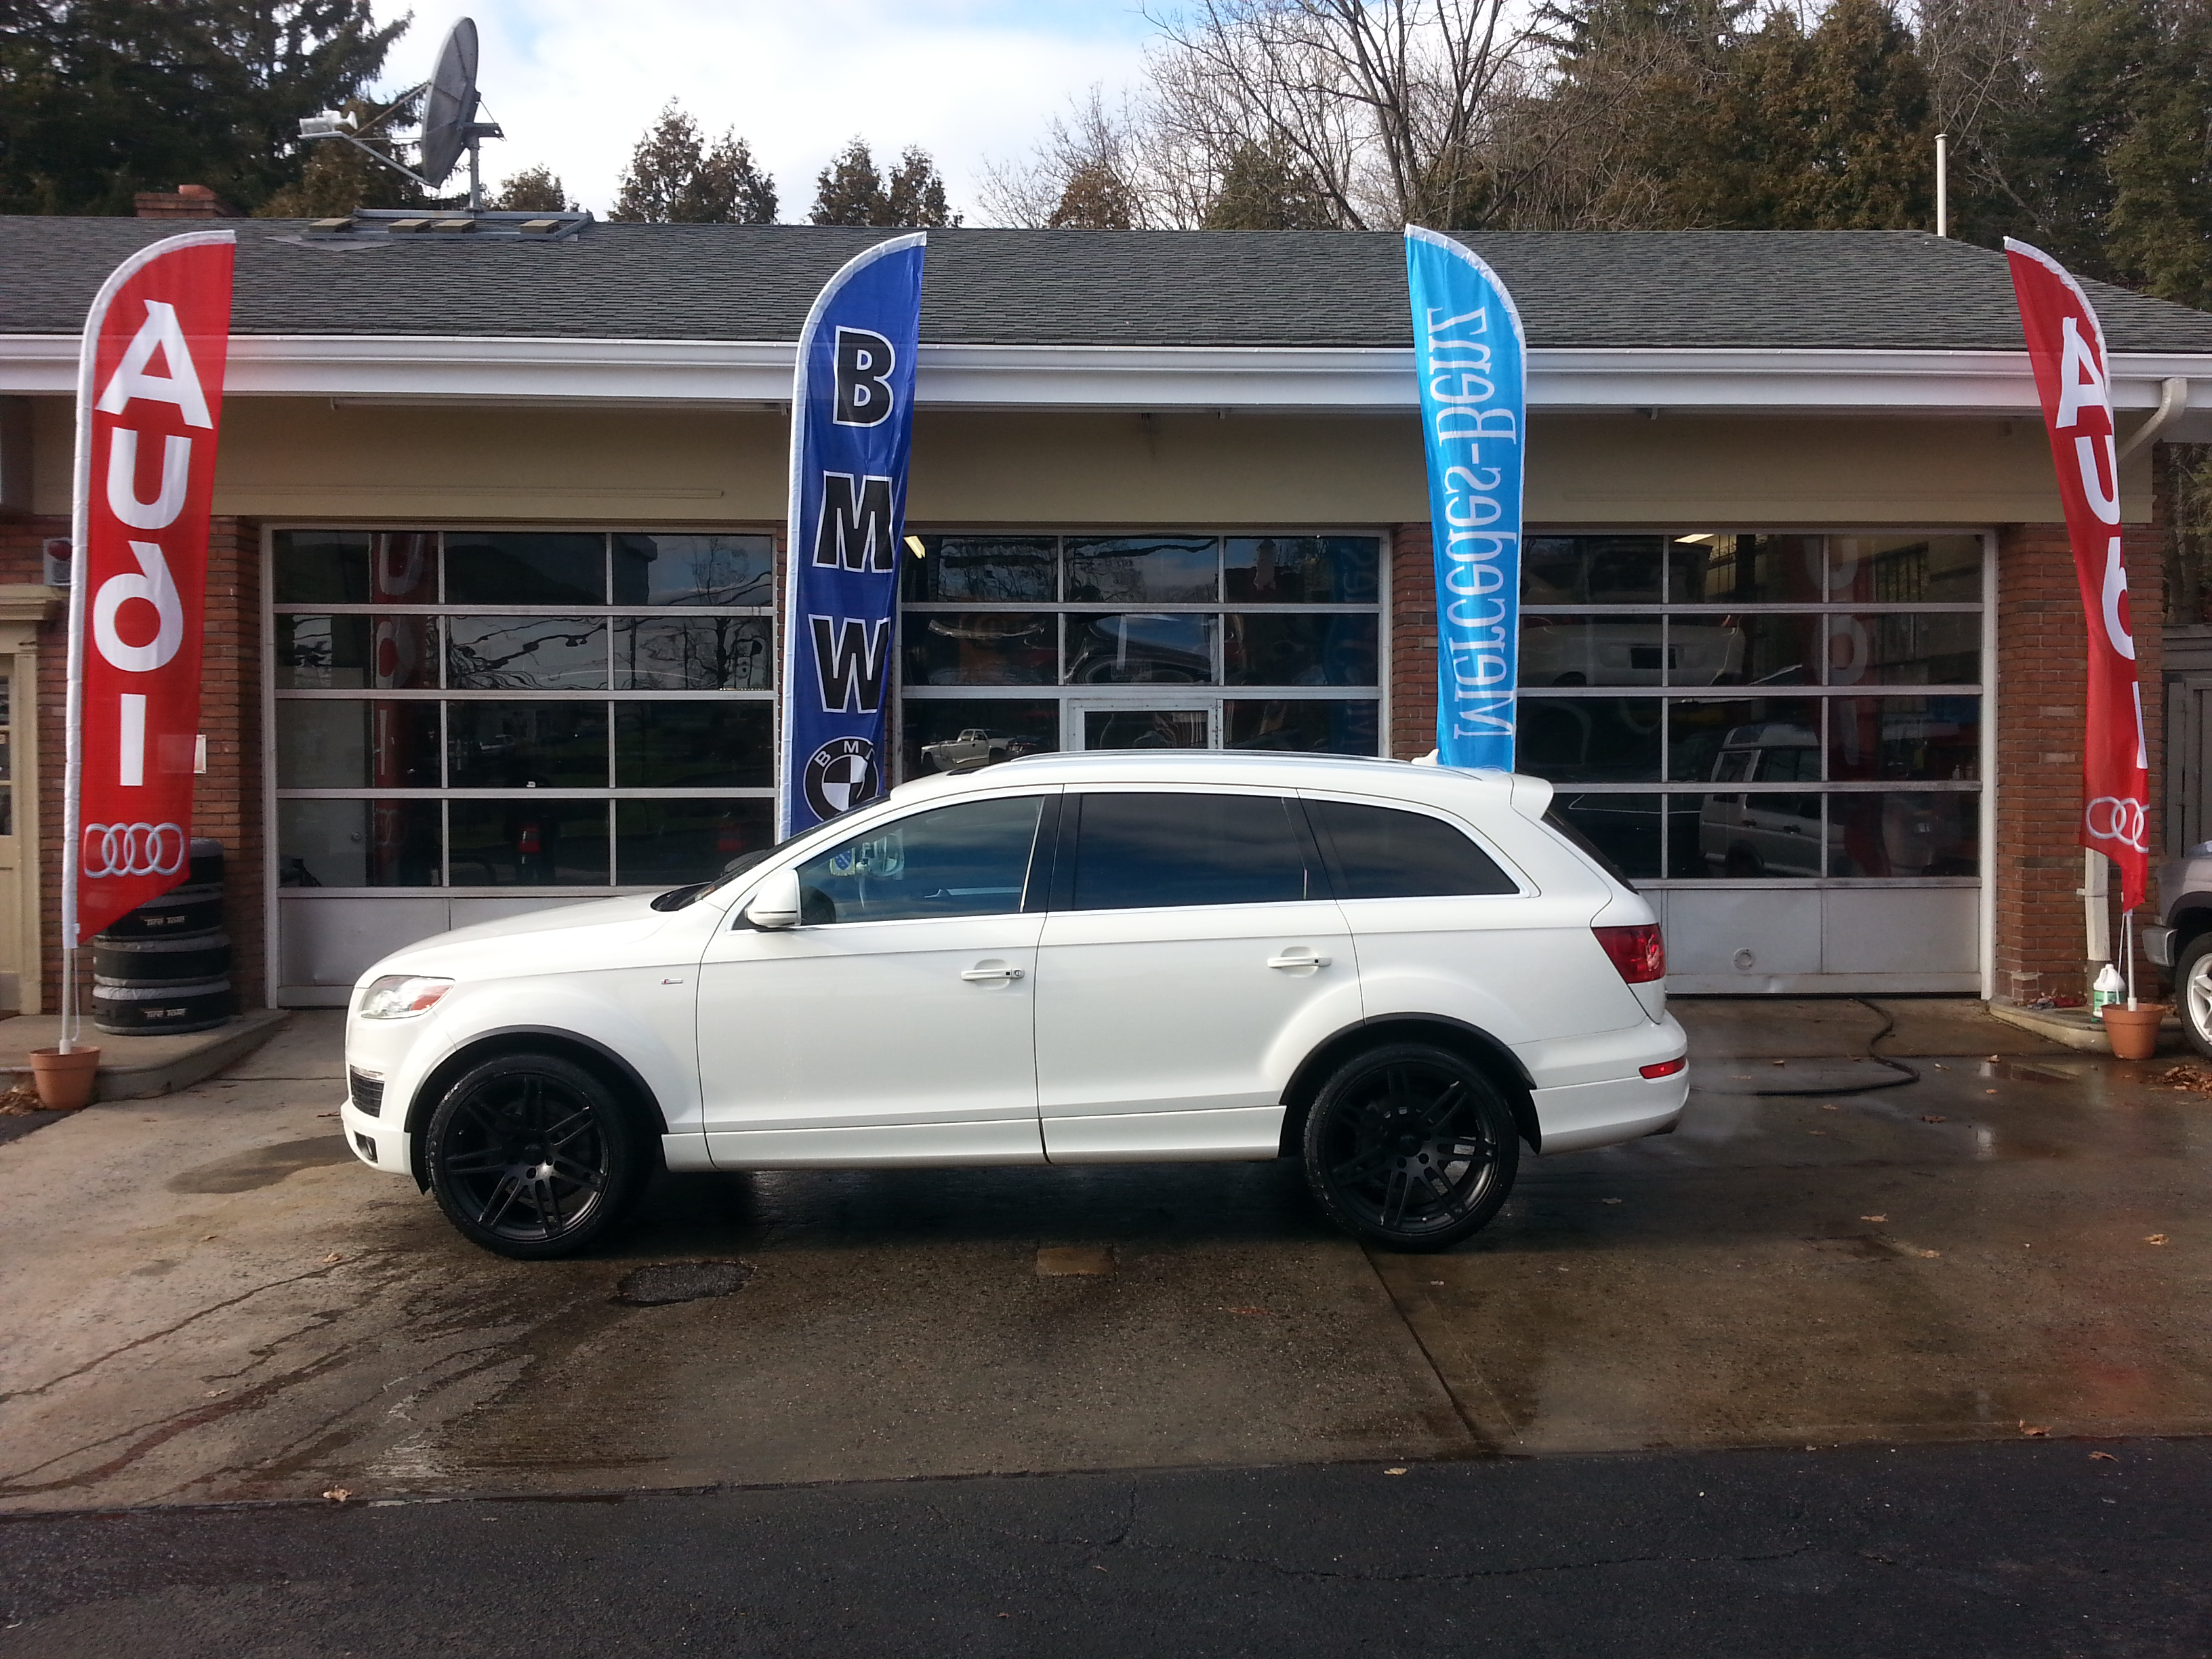 pa suv tiptronic premium used near larksville in tdi for htm barre audi sale wilkes